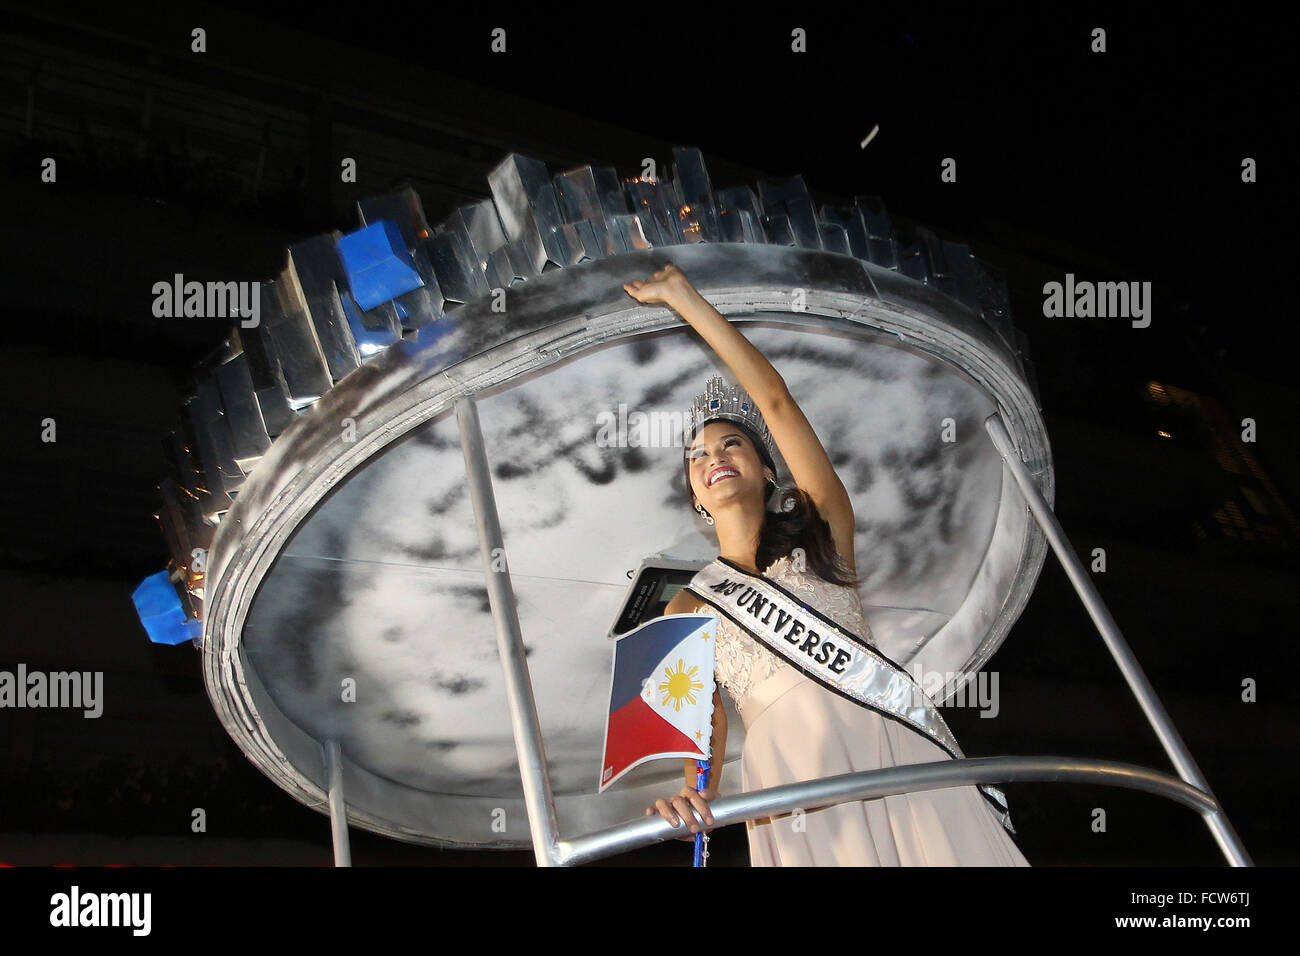 Quezon City, Philippines. 25th Jan, 2016. Miss Universe 2015 Pia Alonzo Wurtzbach of the Philippines waves during - Stock Image